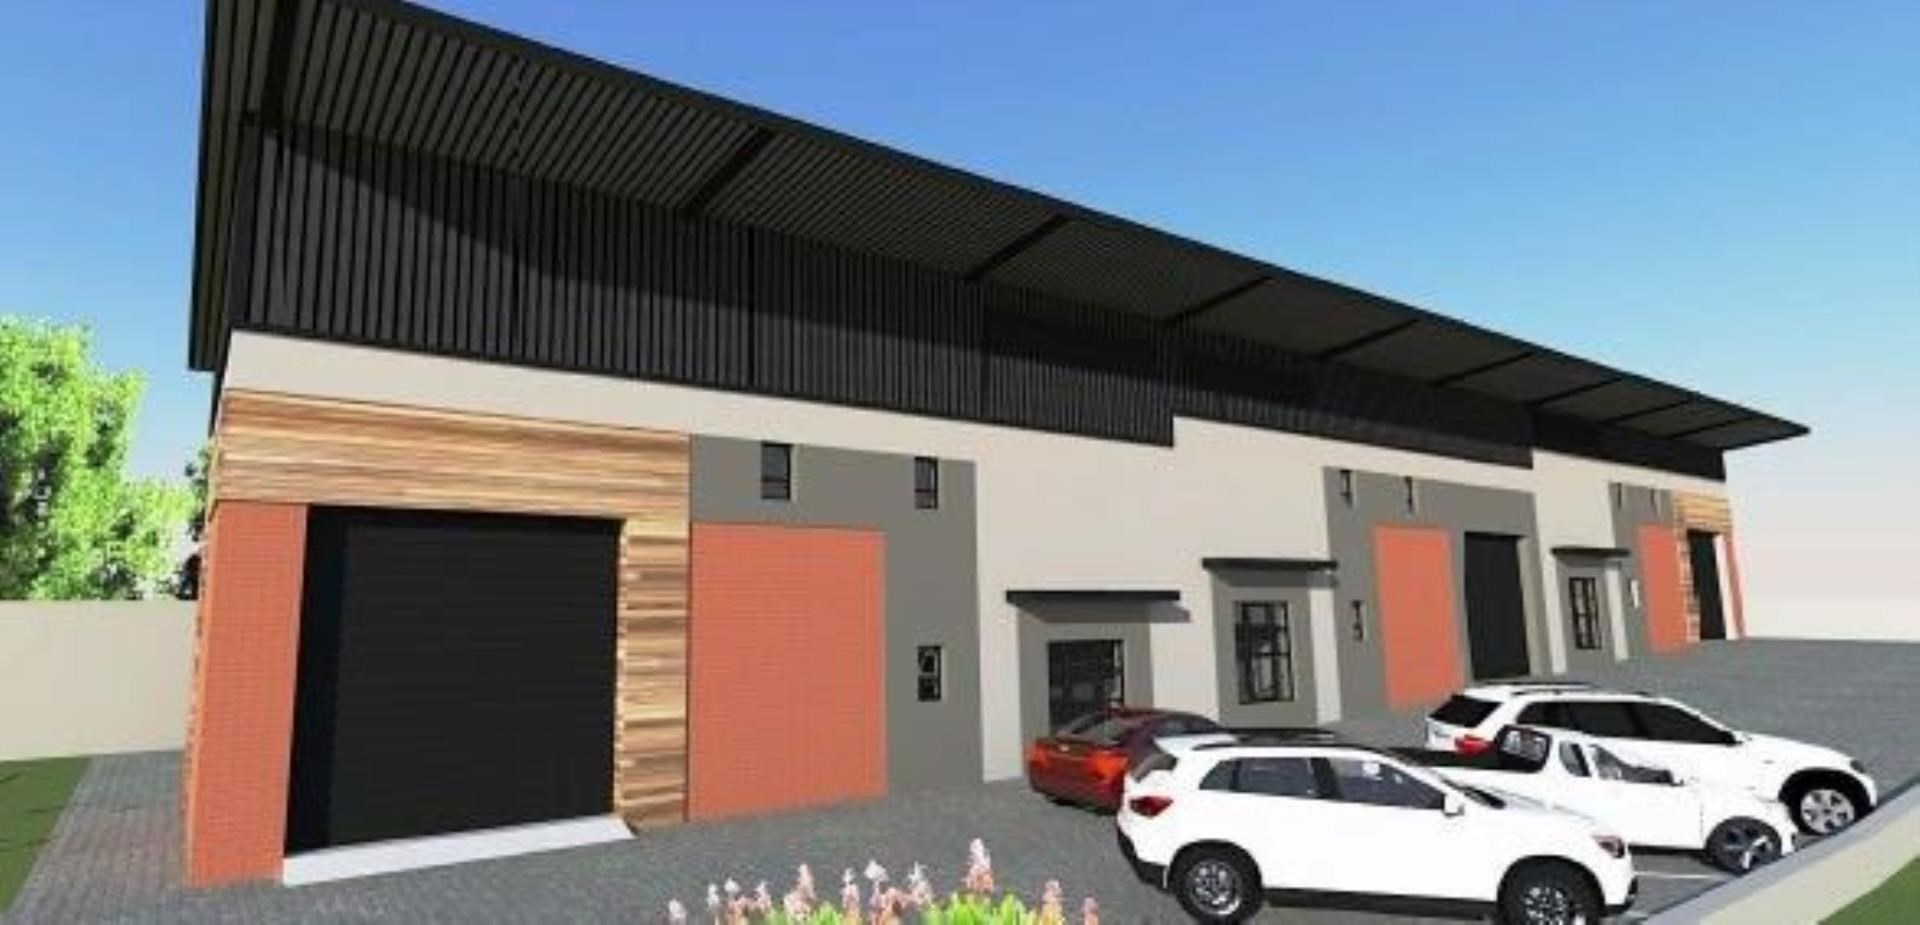 Factory to Let in Fairview